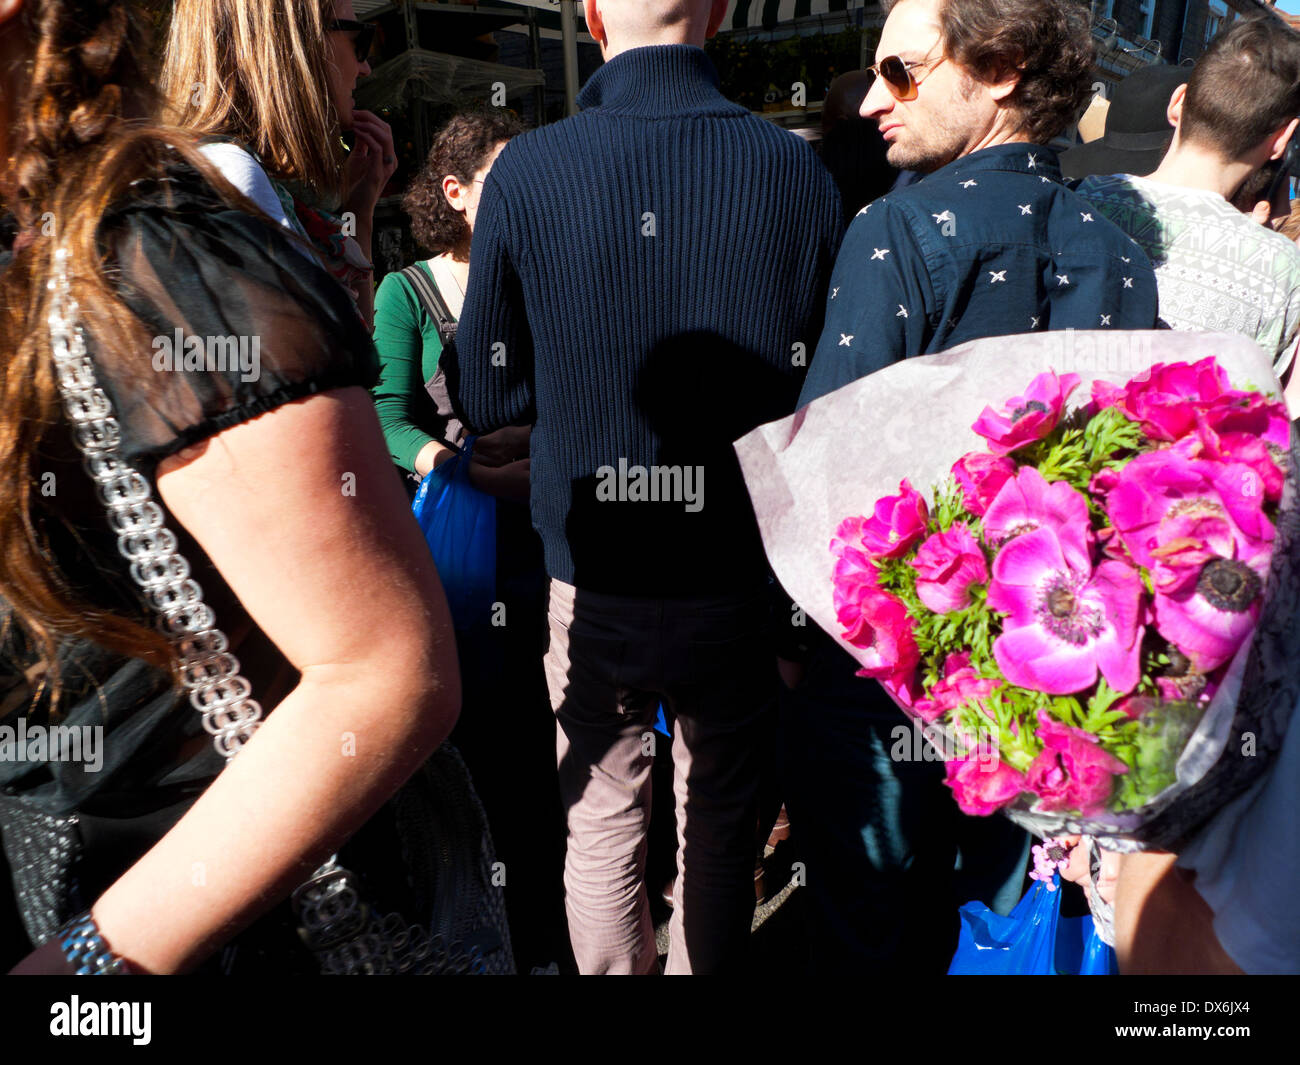 Pink anenome cut flowers in the crowded street at Columbia Road Flower Market London E2 England UK  KATHY DEWITT - Stock Image